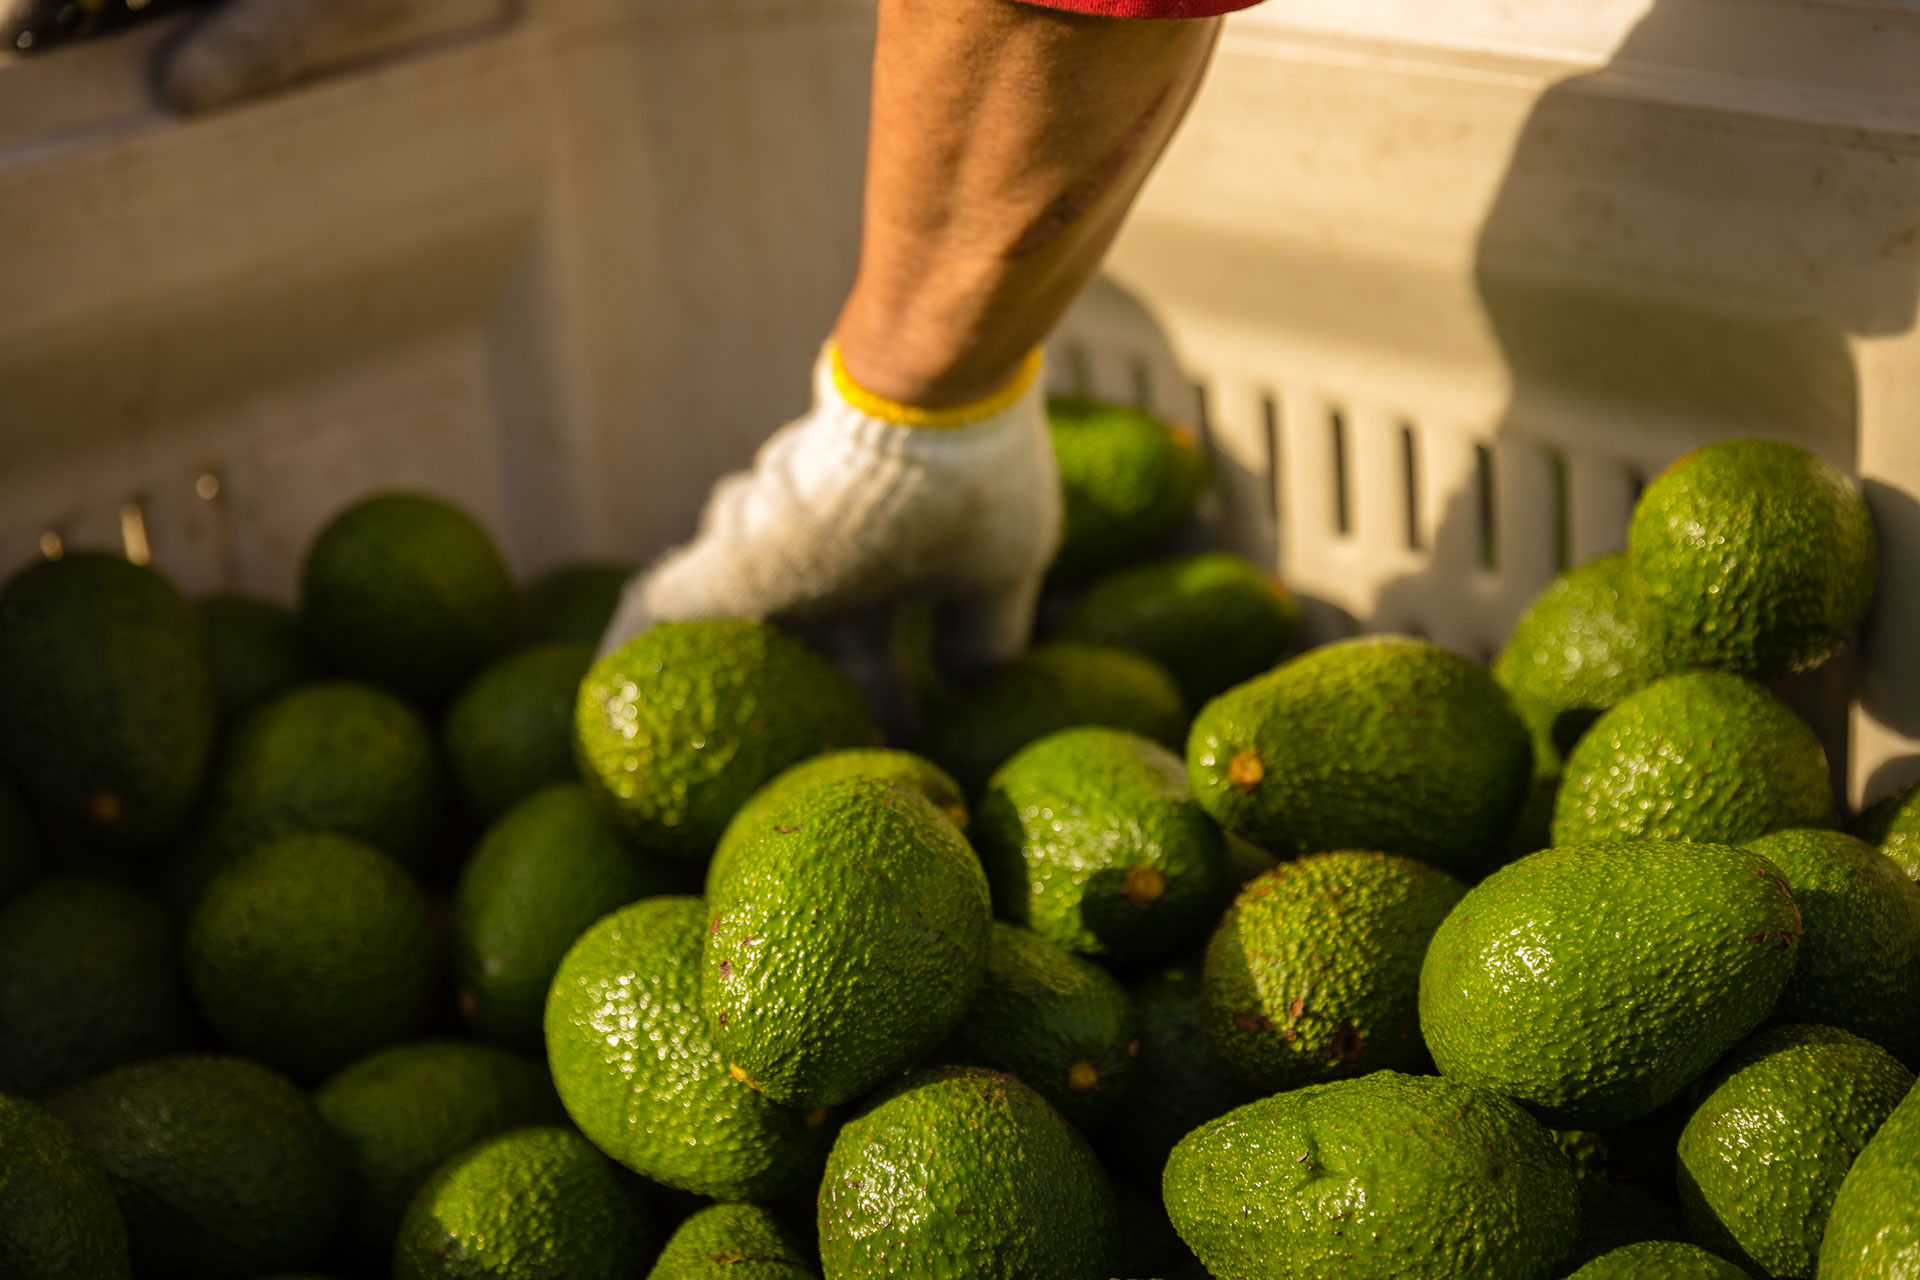 Avocado Farming and Harvesting California